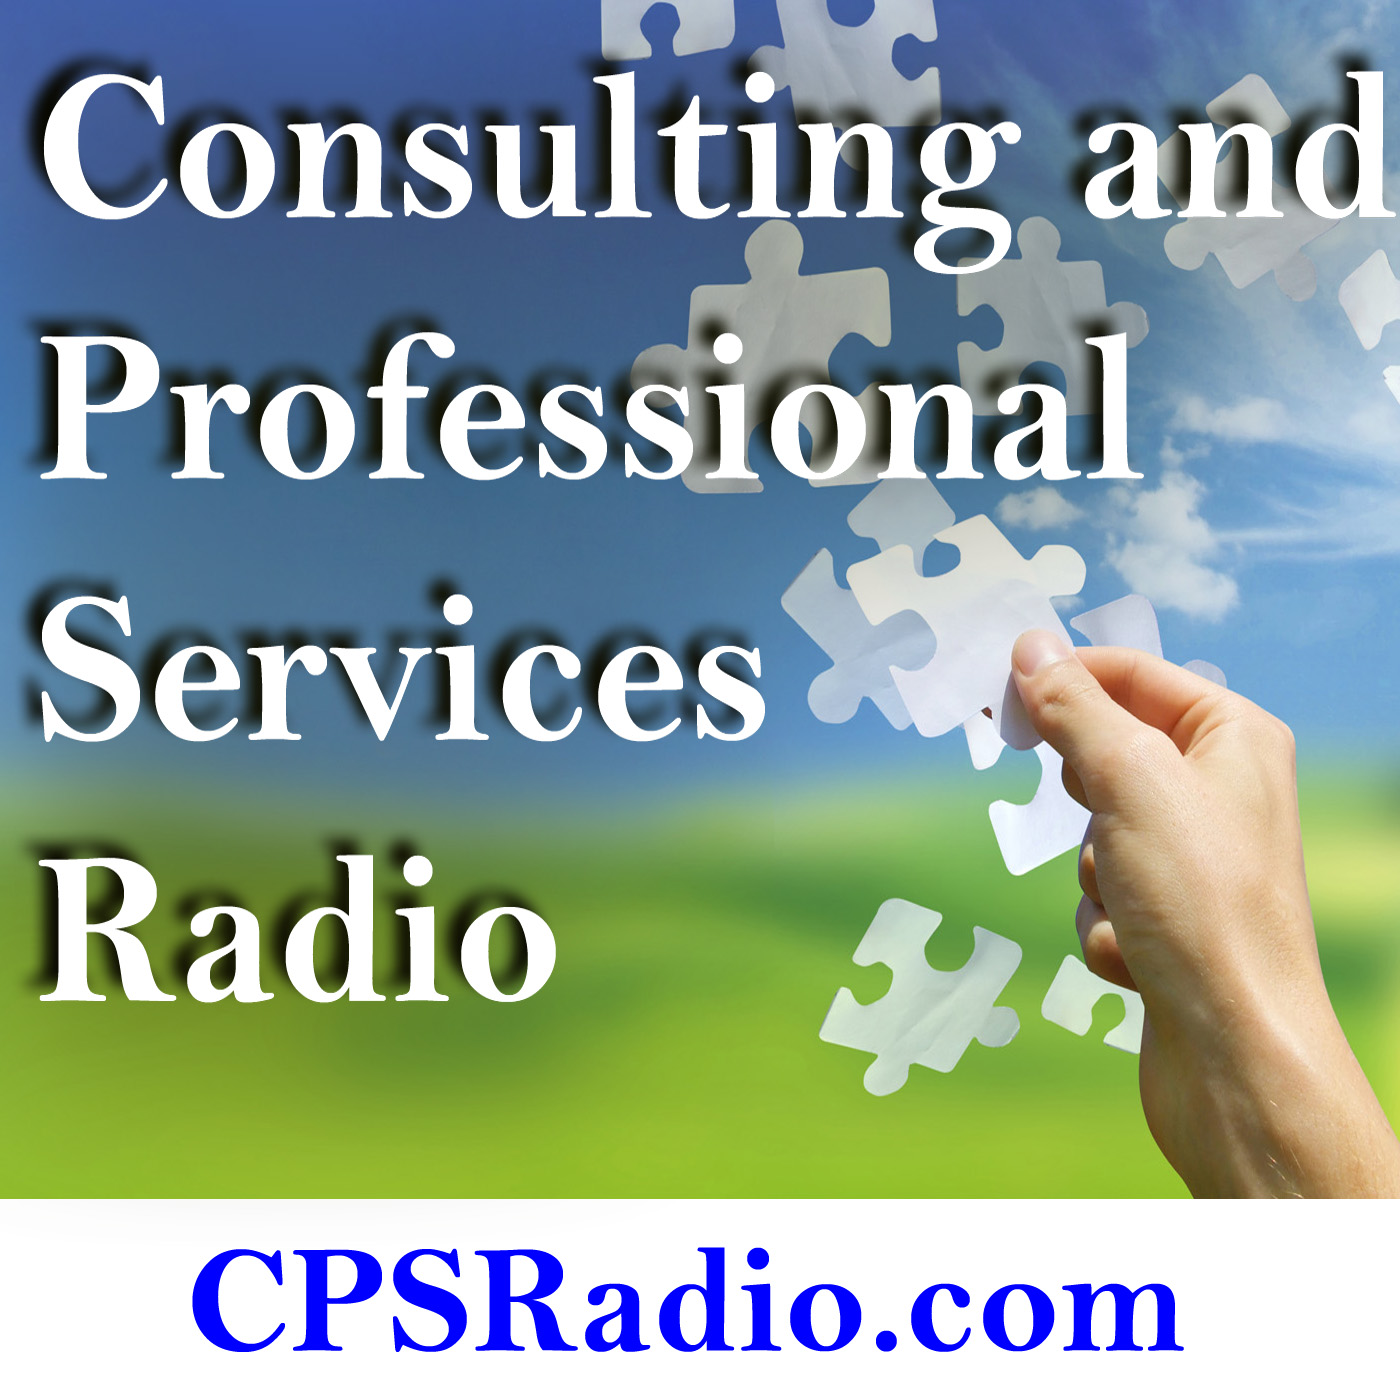 Consulting and Professional Services Radio